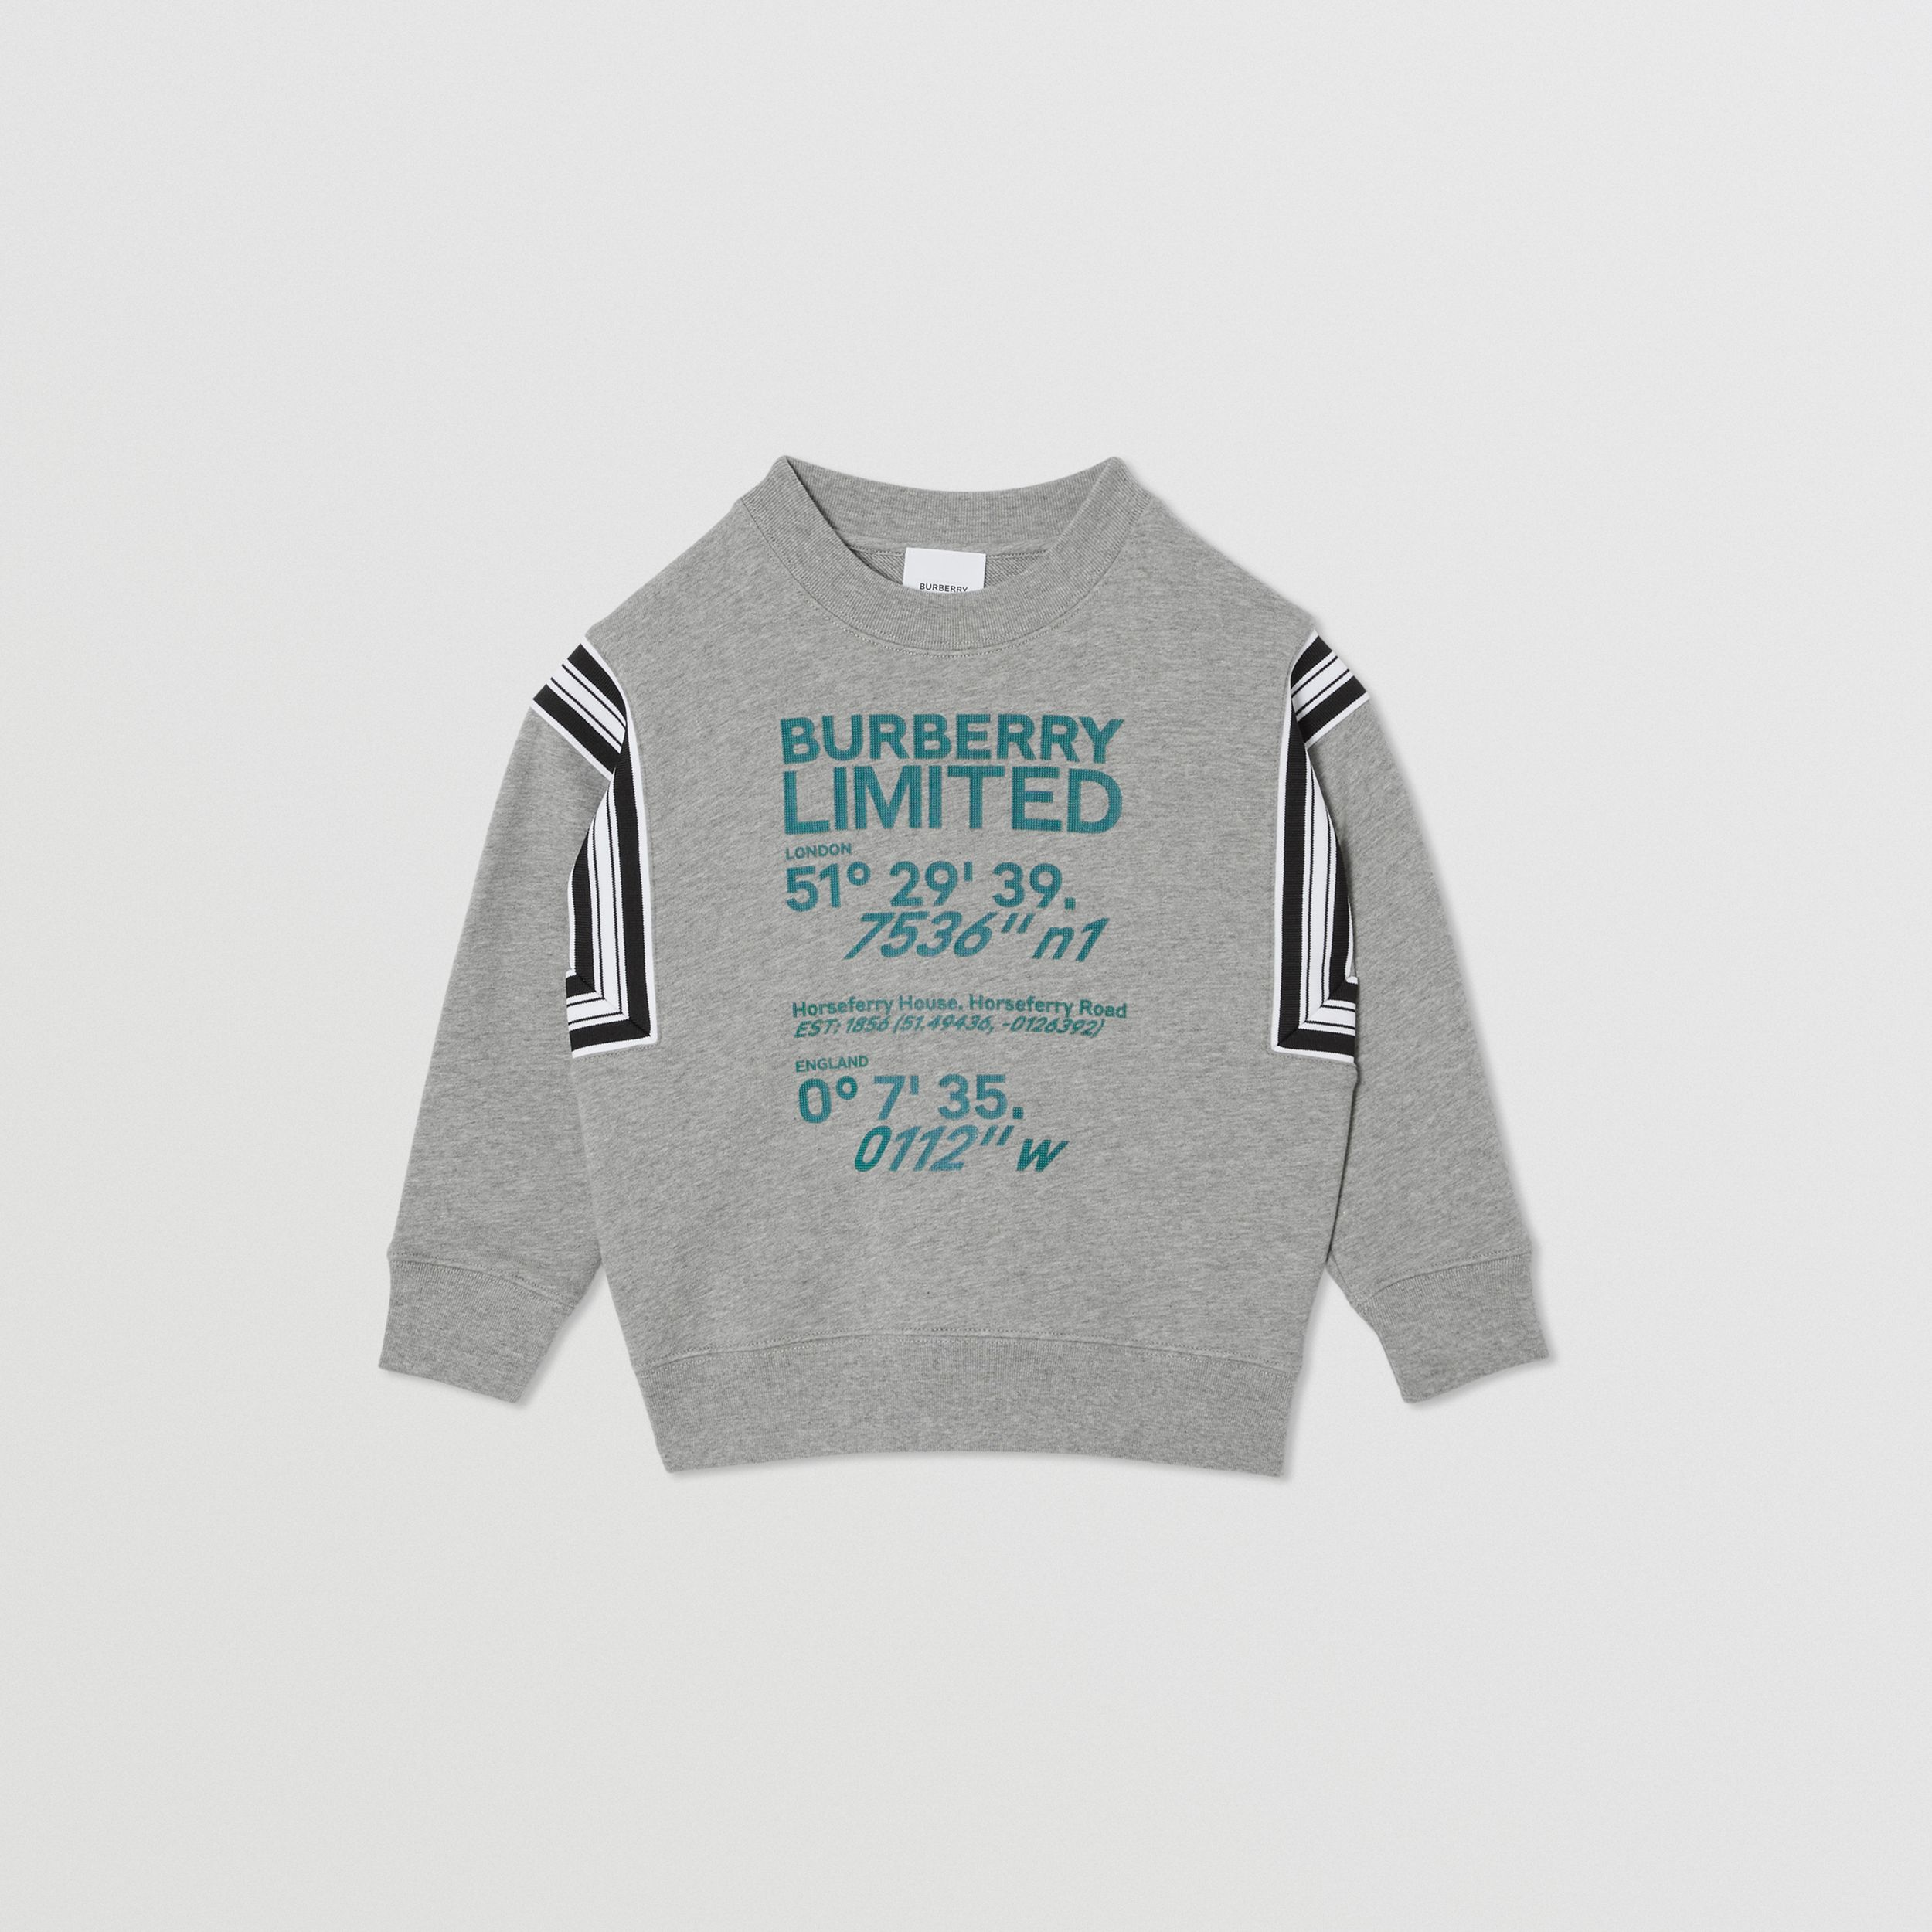 Coordinates Print Cotton Sweatshirt in Grey Melange | Burberry - 1